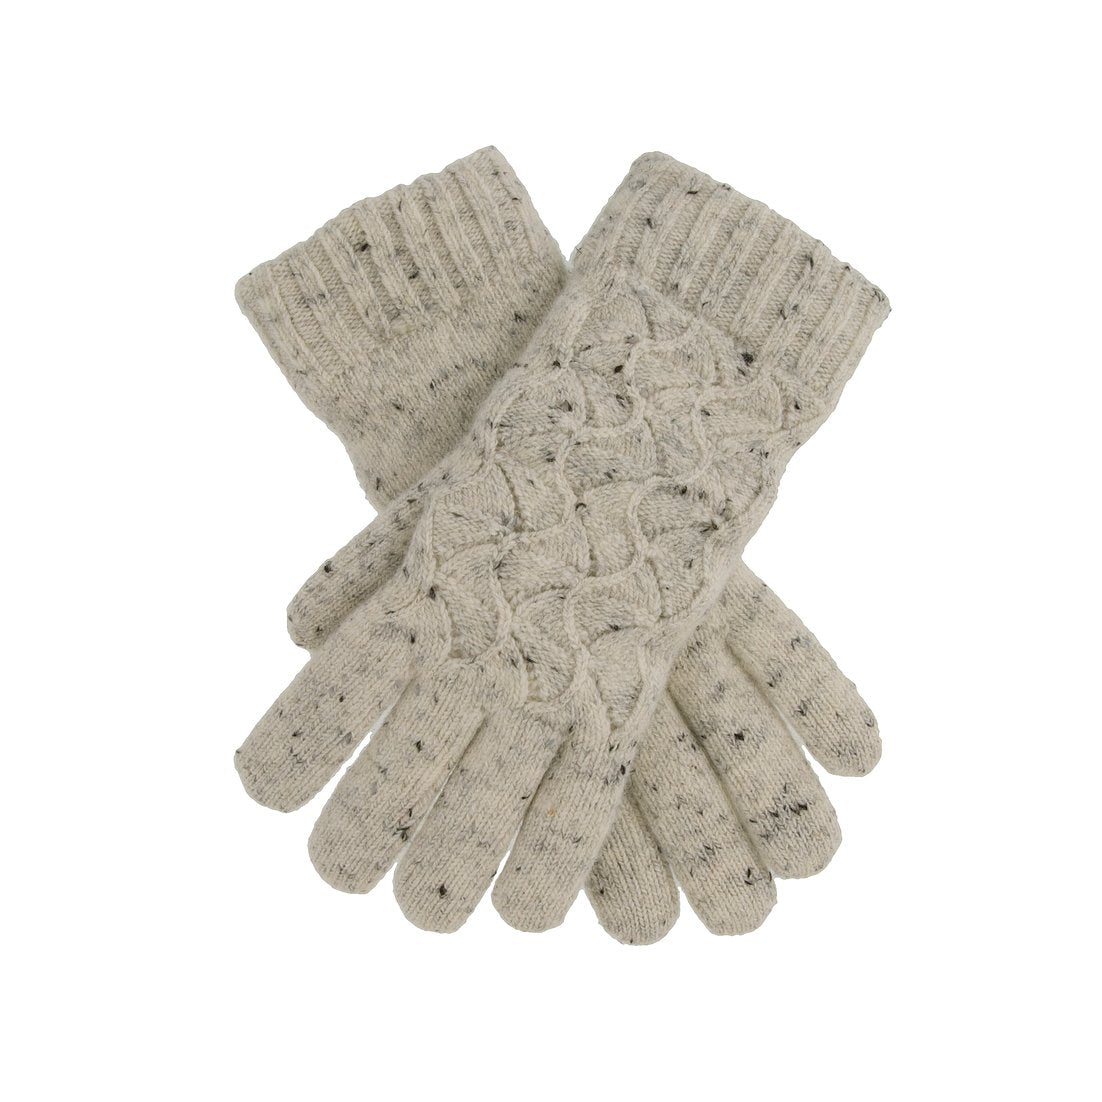 Dents knitted glove with chenille lining, white